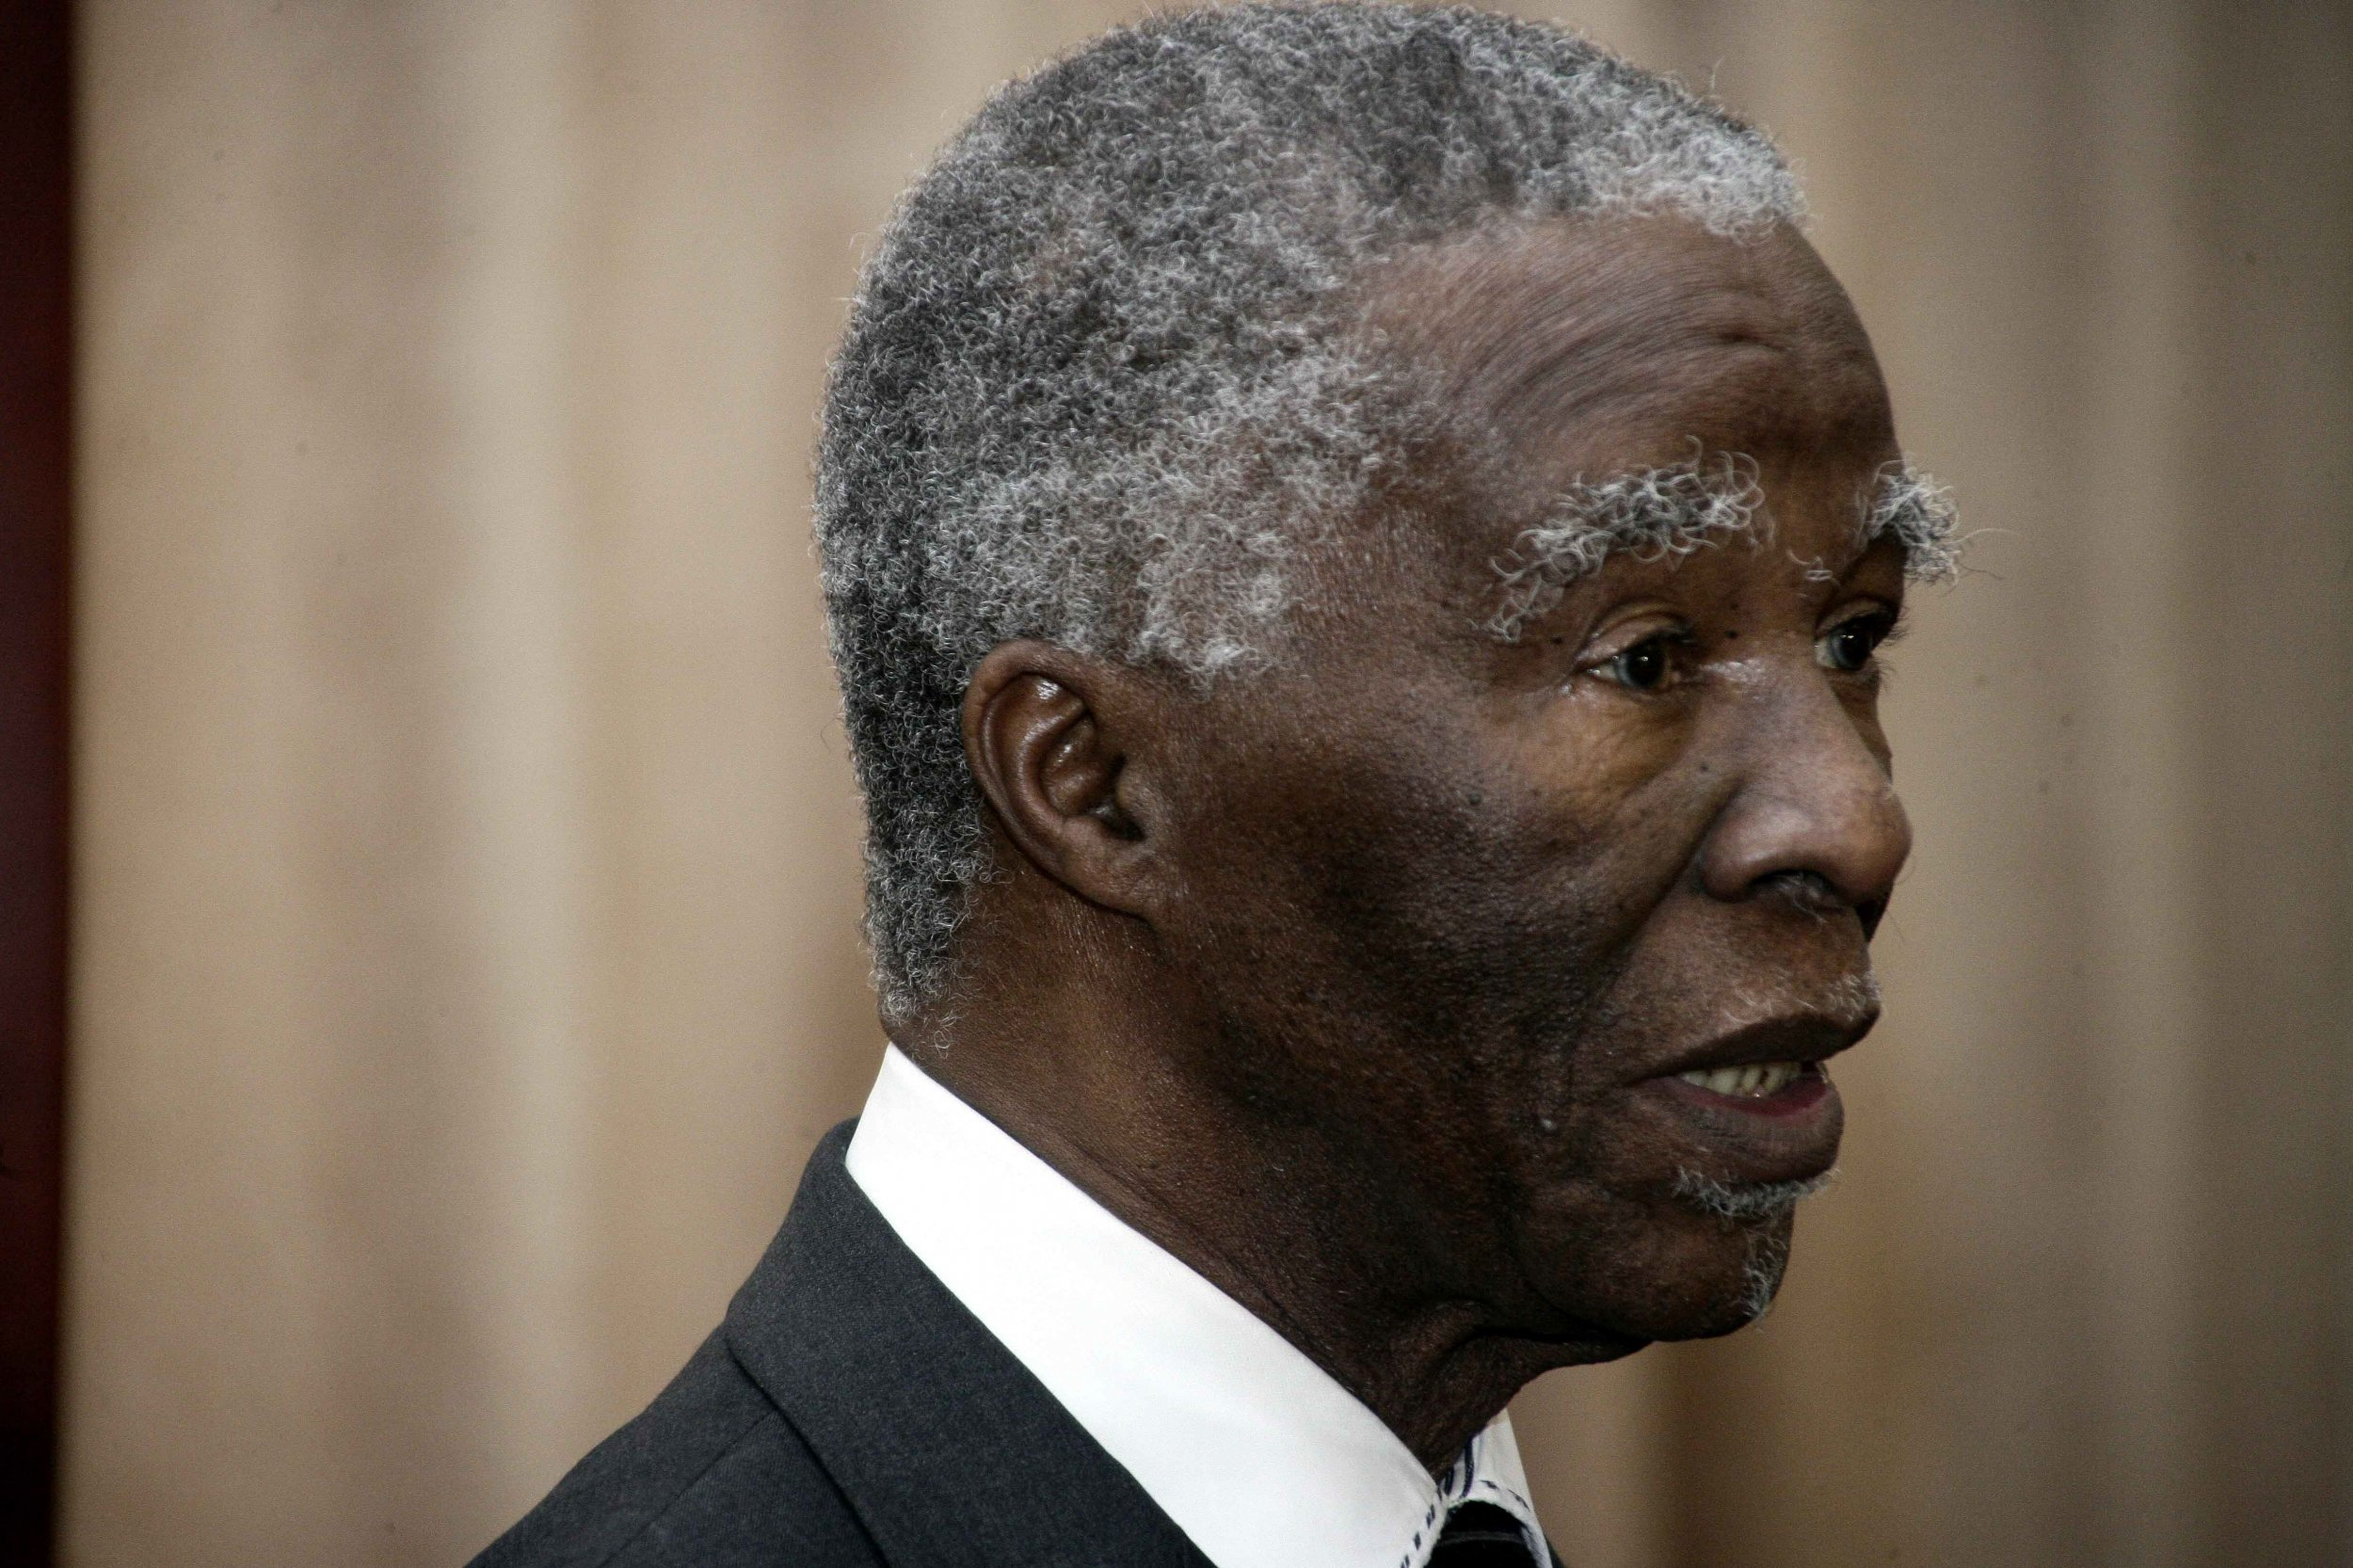 Former South African President Thabo Mbeki at a meeting in Sudan.